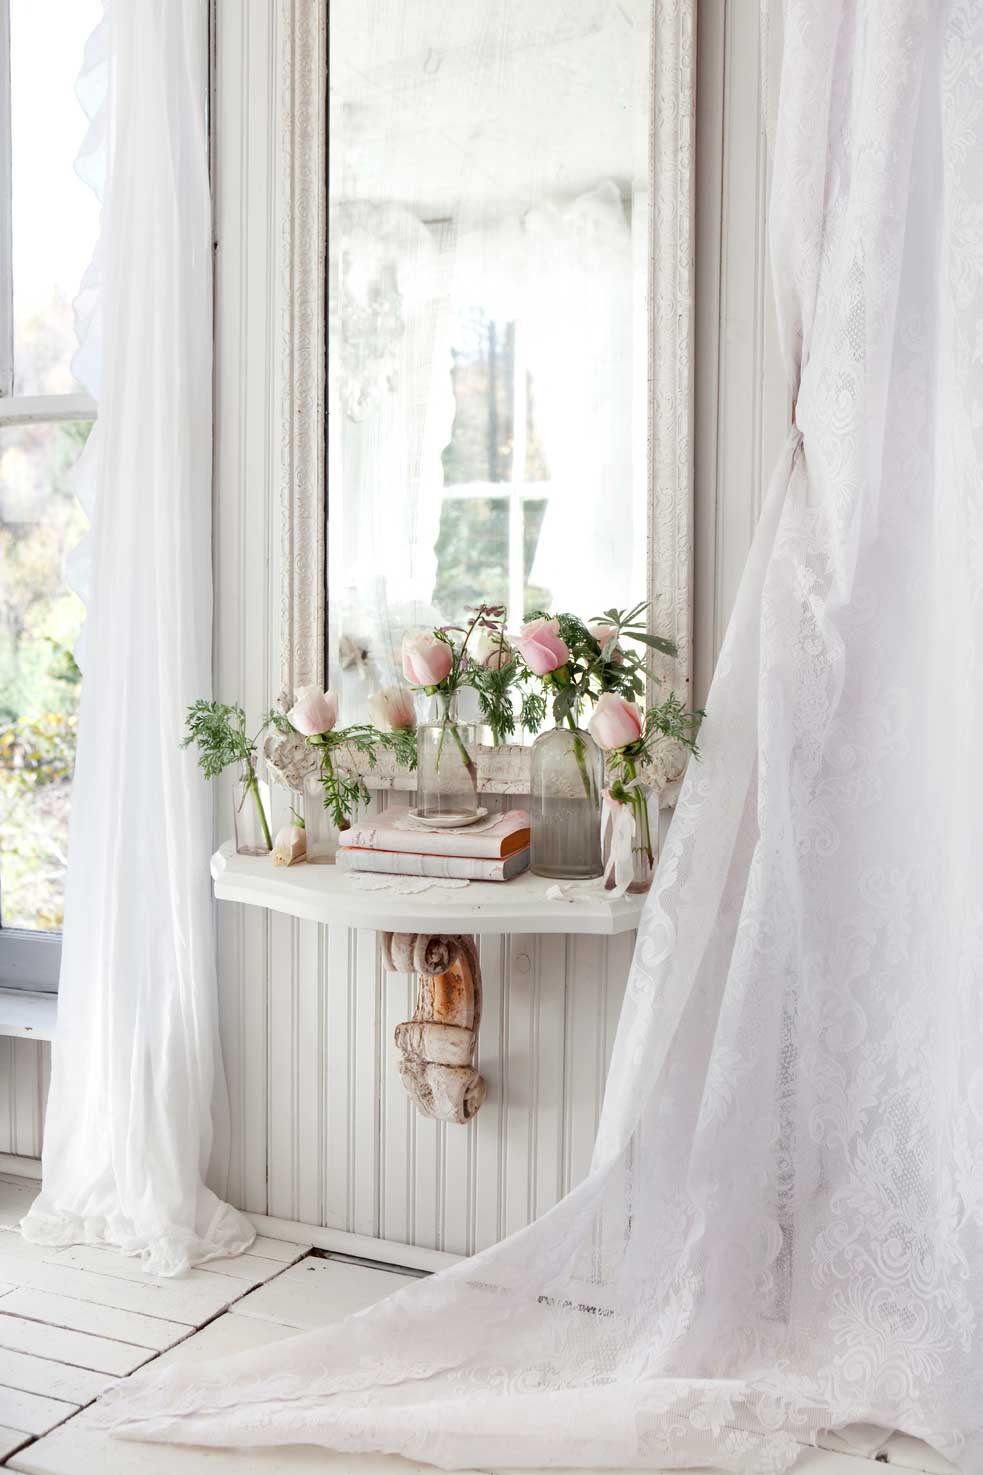 Shabby Chic And Eclectic Decorating Living Room: SHABBY CHIC ULTRA ROMANTICO [] ULTRA ROMANTIC SHABBY CHIC